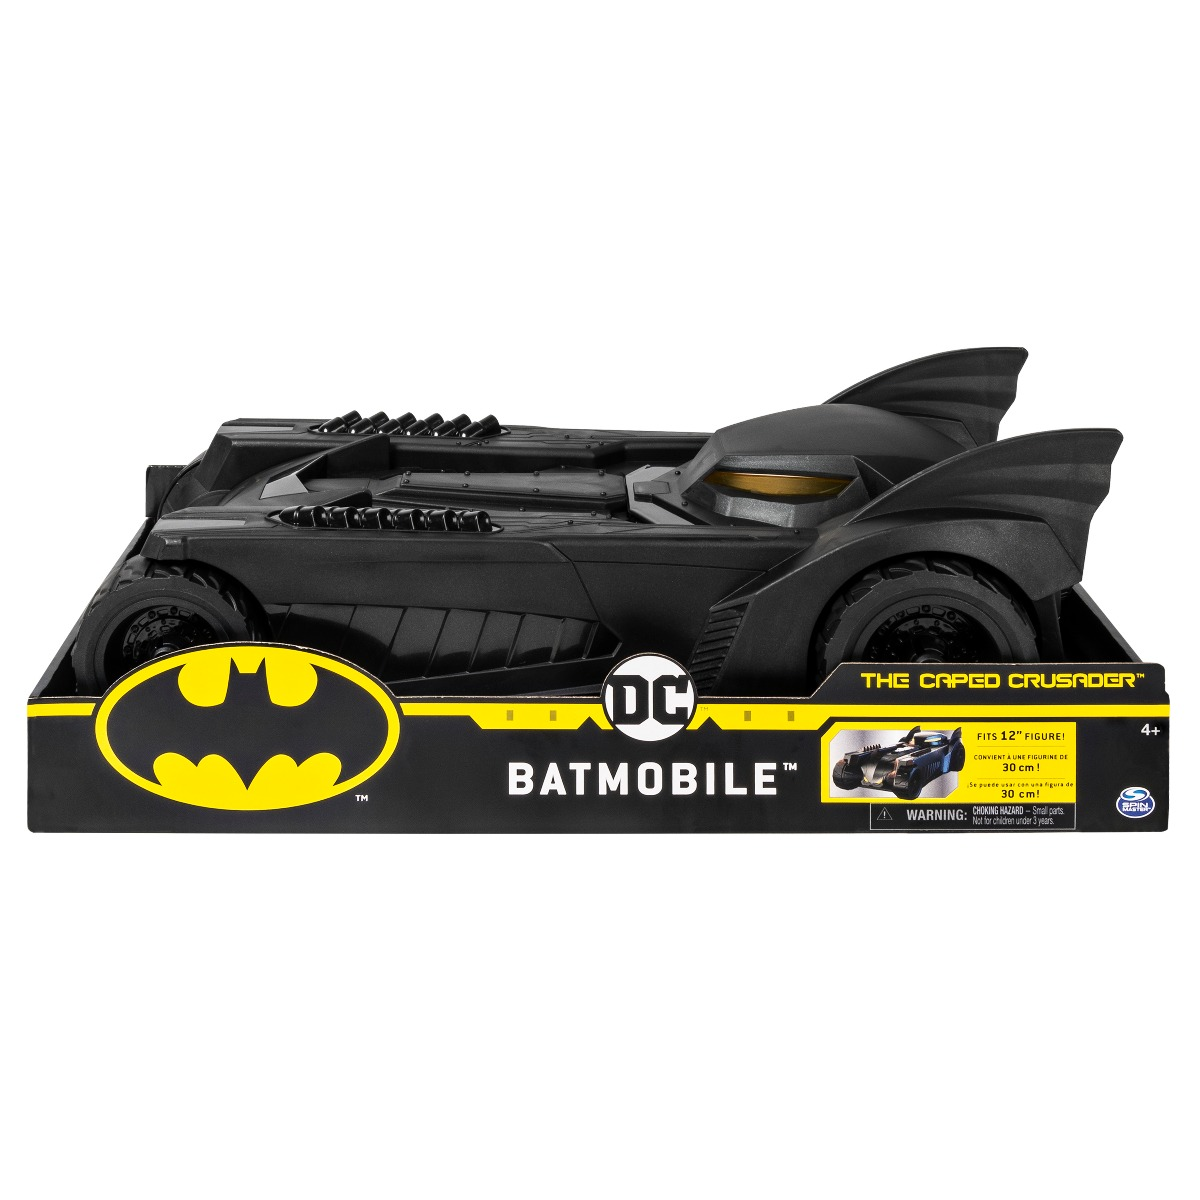 Masinuta Batman The Caped Crusader, Batmobile 30 cm